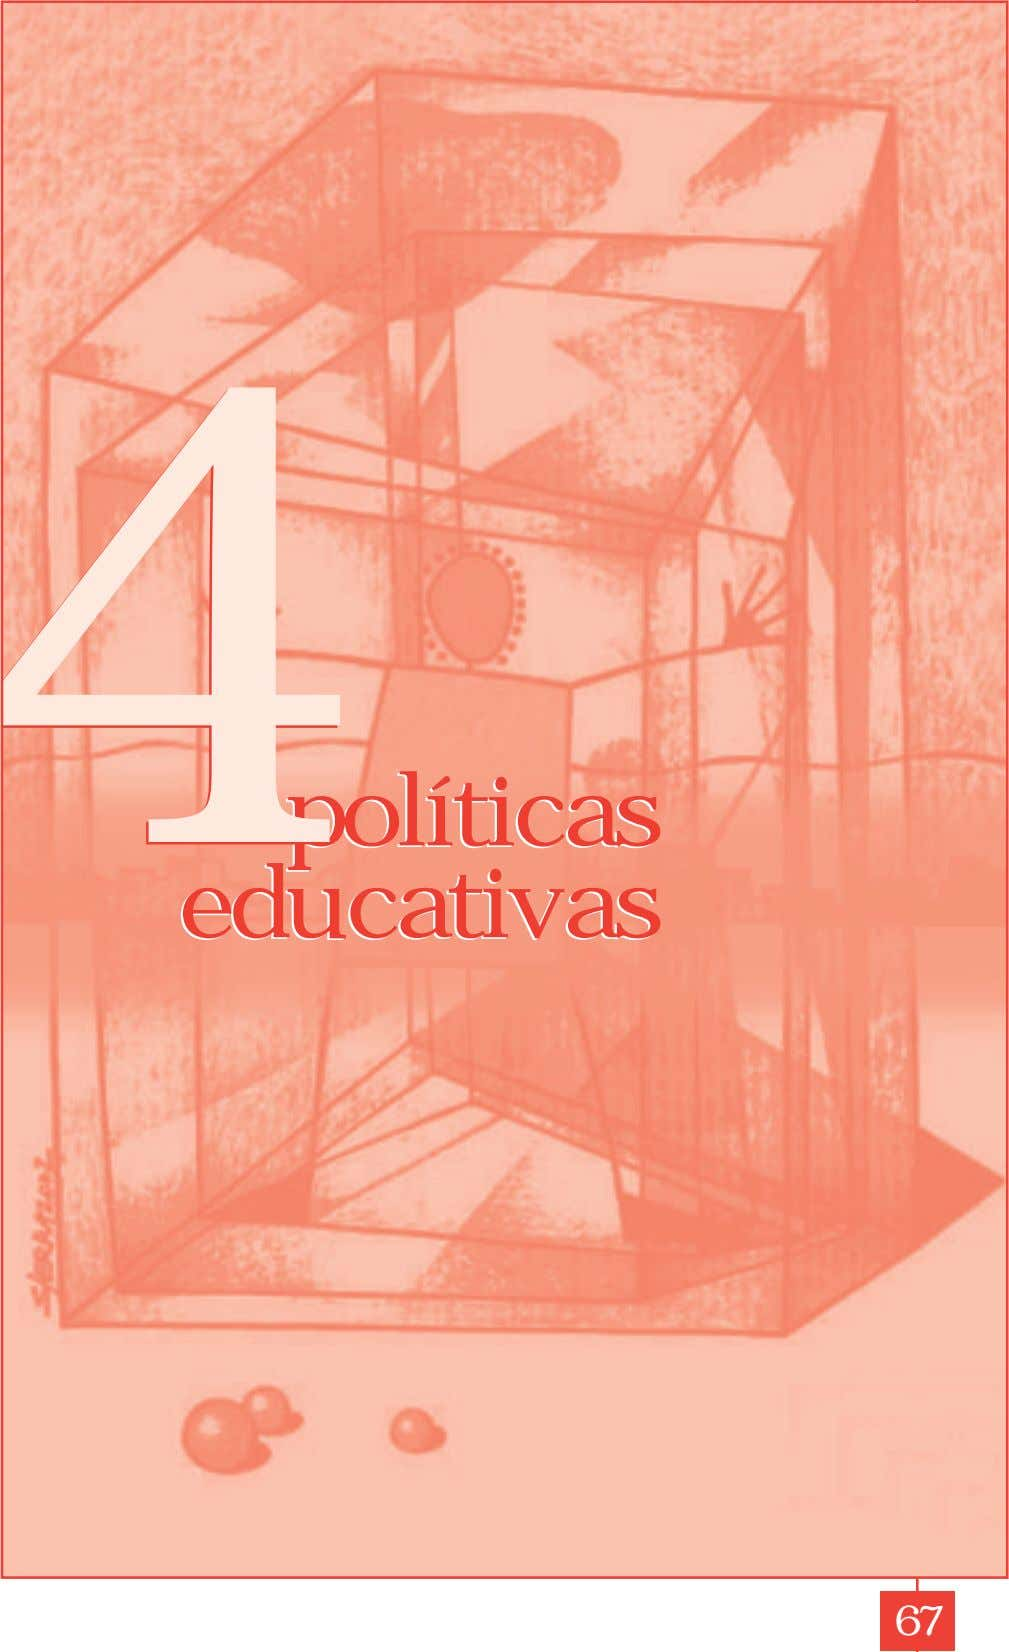 44 políticas políticas educativas educativas 67